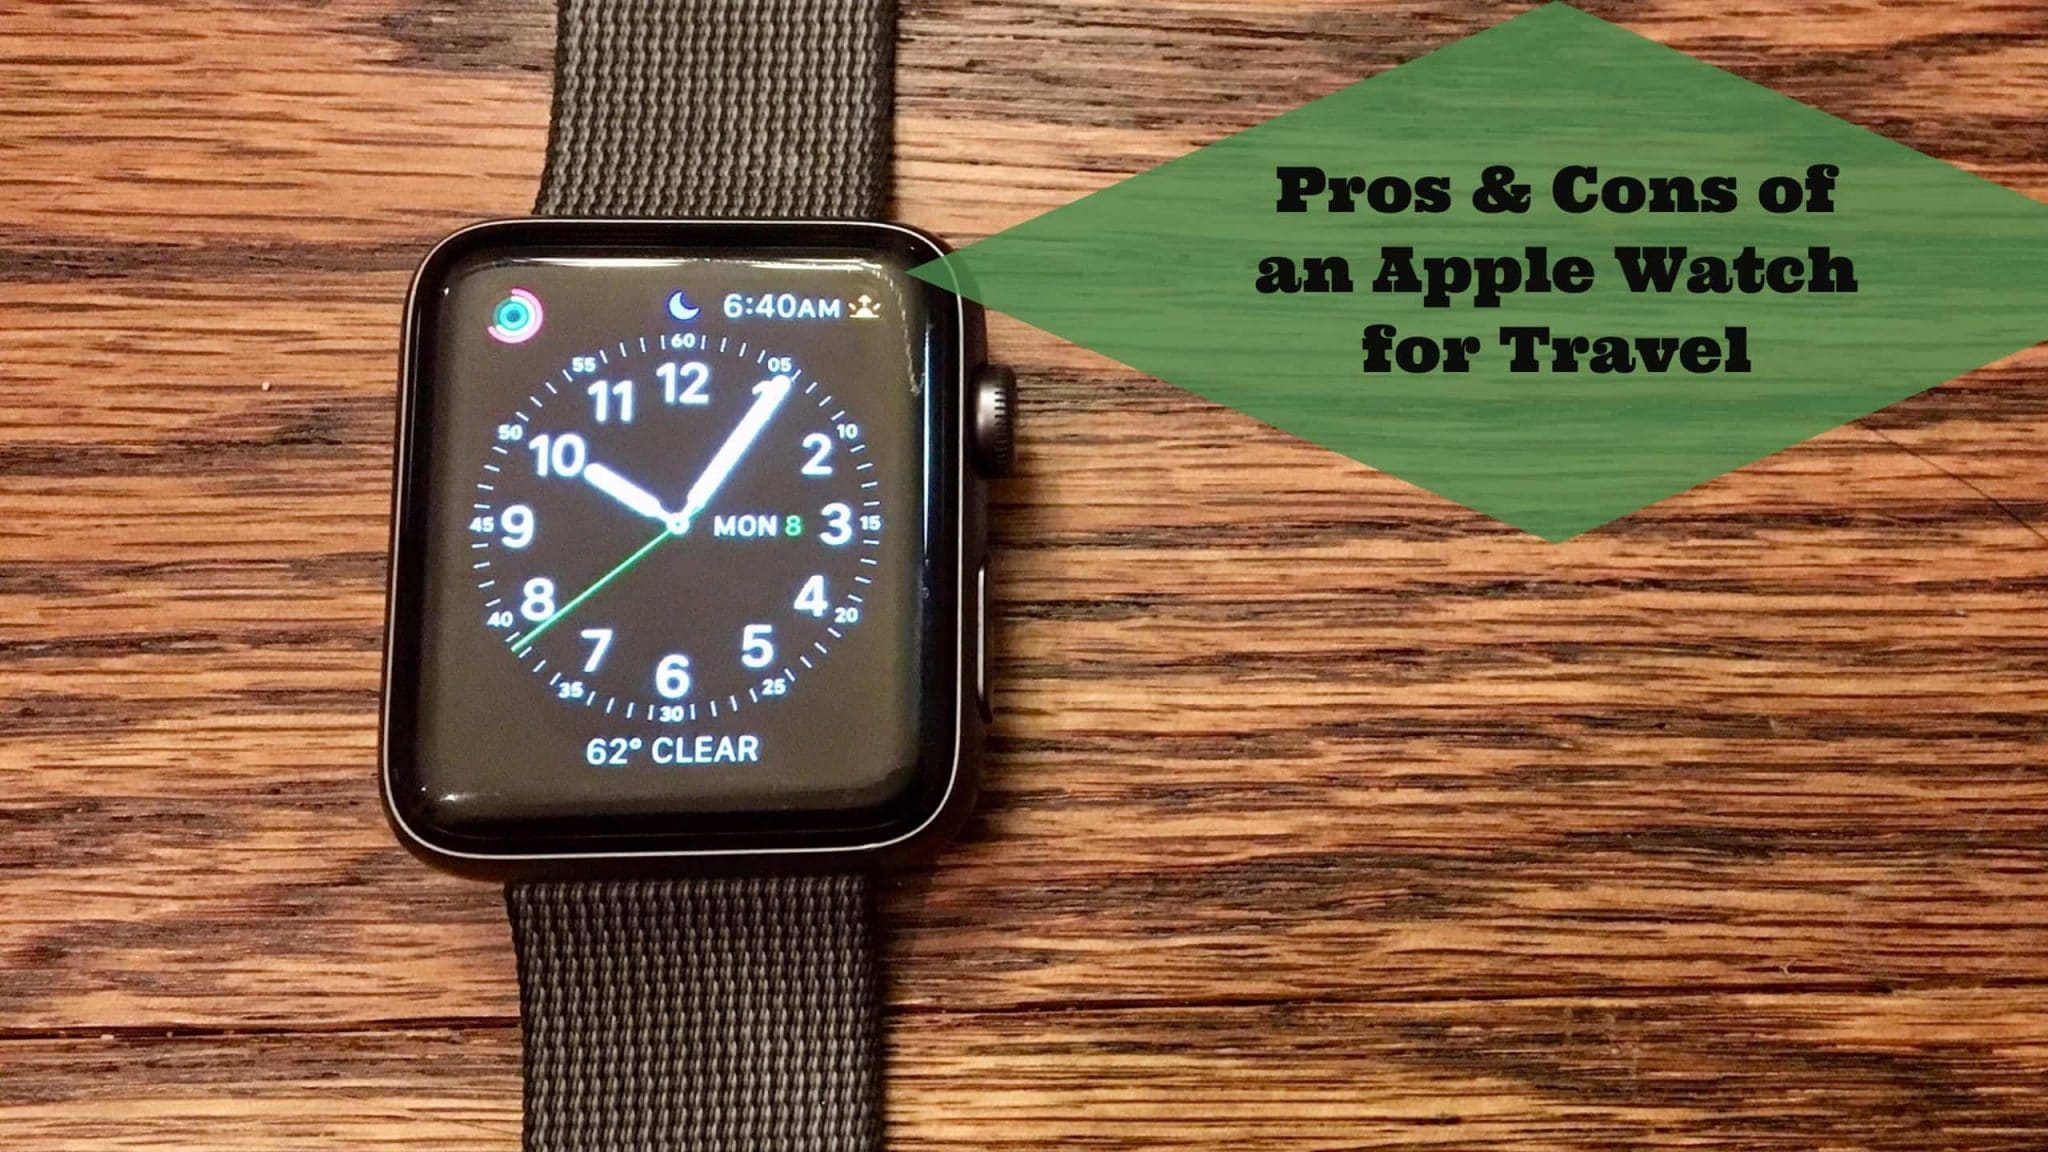 The Pros and Cons of Using an Apple Watch for Travel